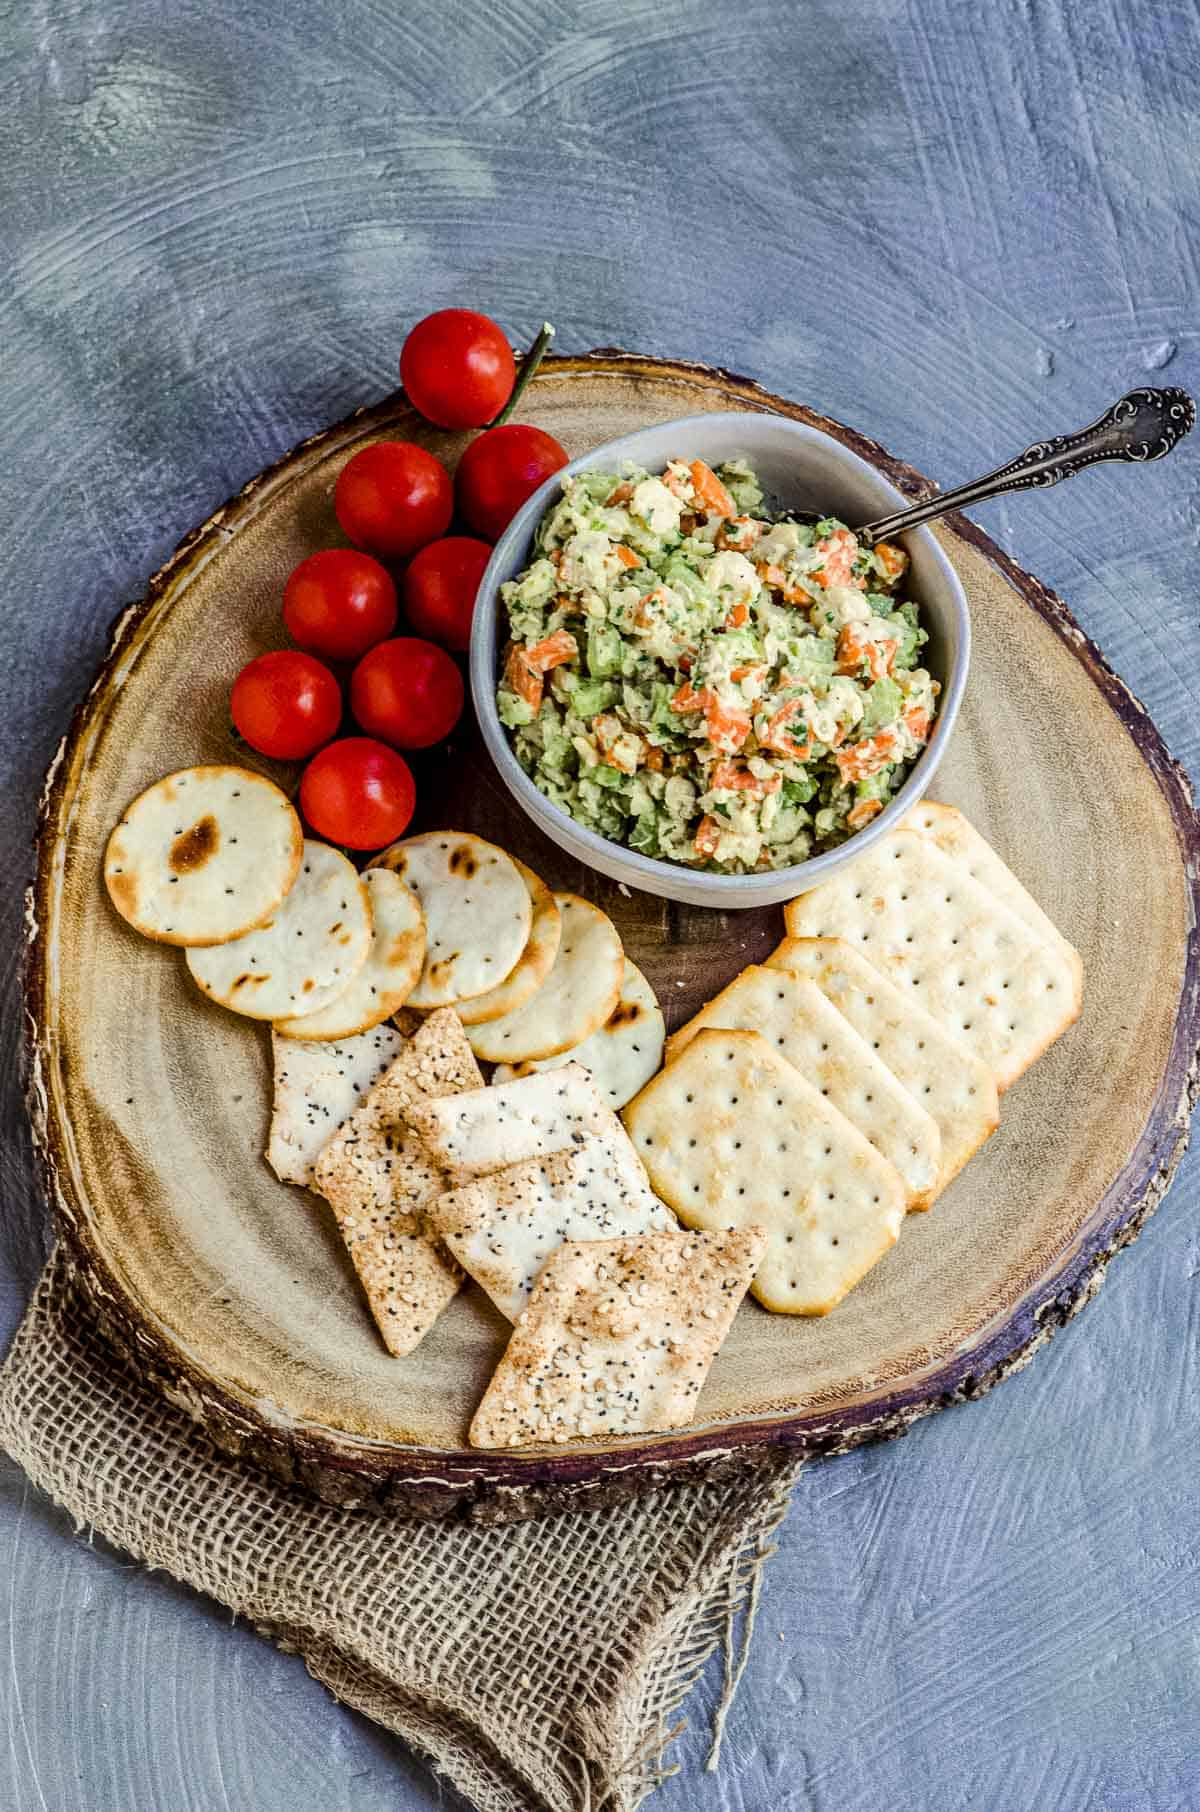 Birdseye view of a bowl with chickpea salad on a wood board with assorted crackers and fresh cherry tomatoes